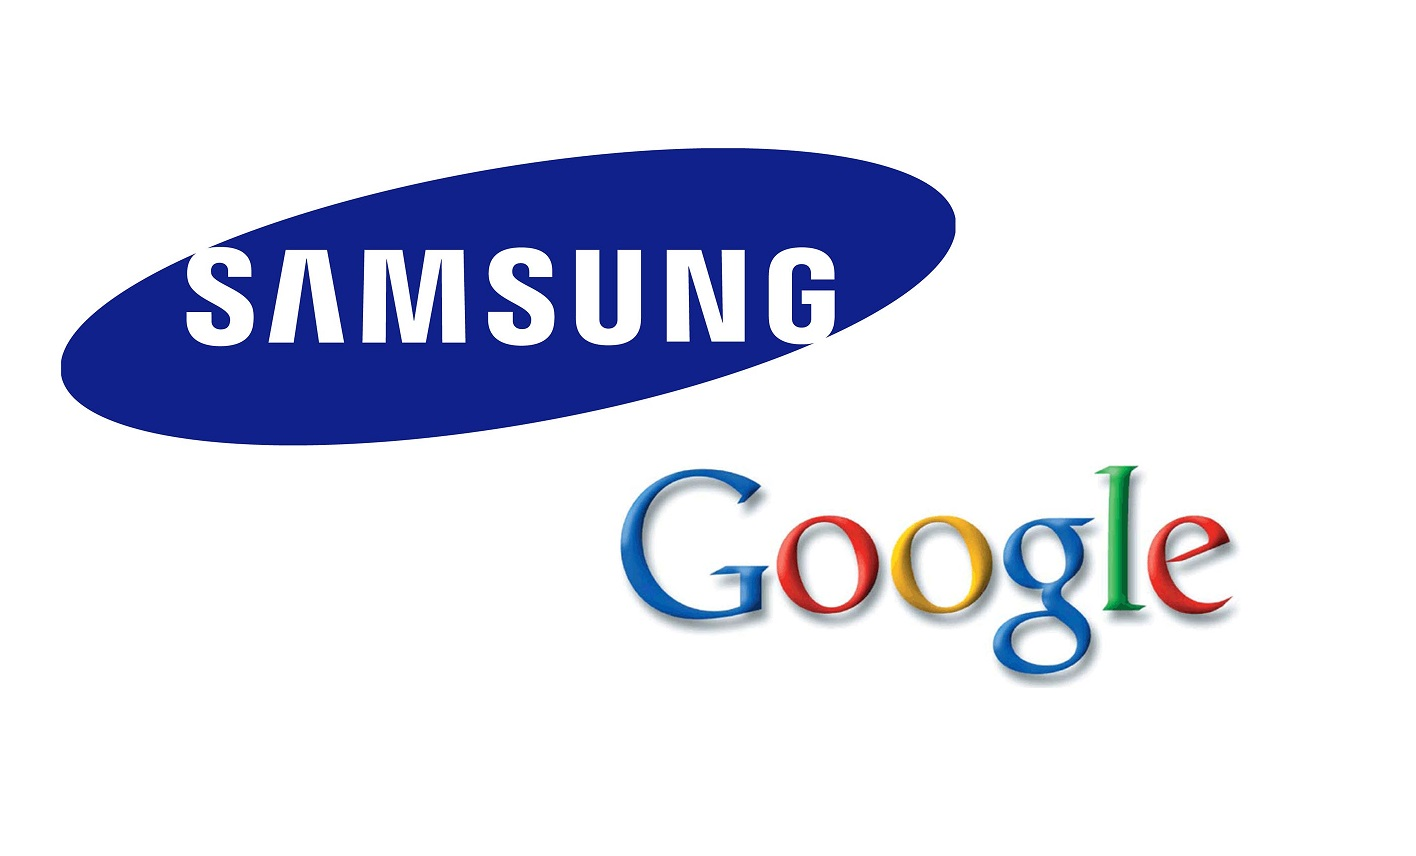 Samsung And Google Sign 10 Year Global Patent License